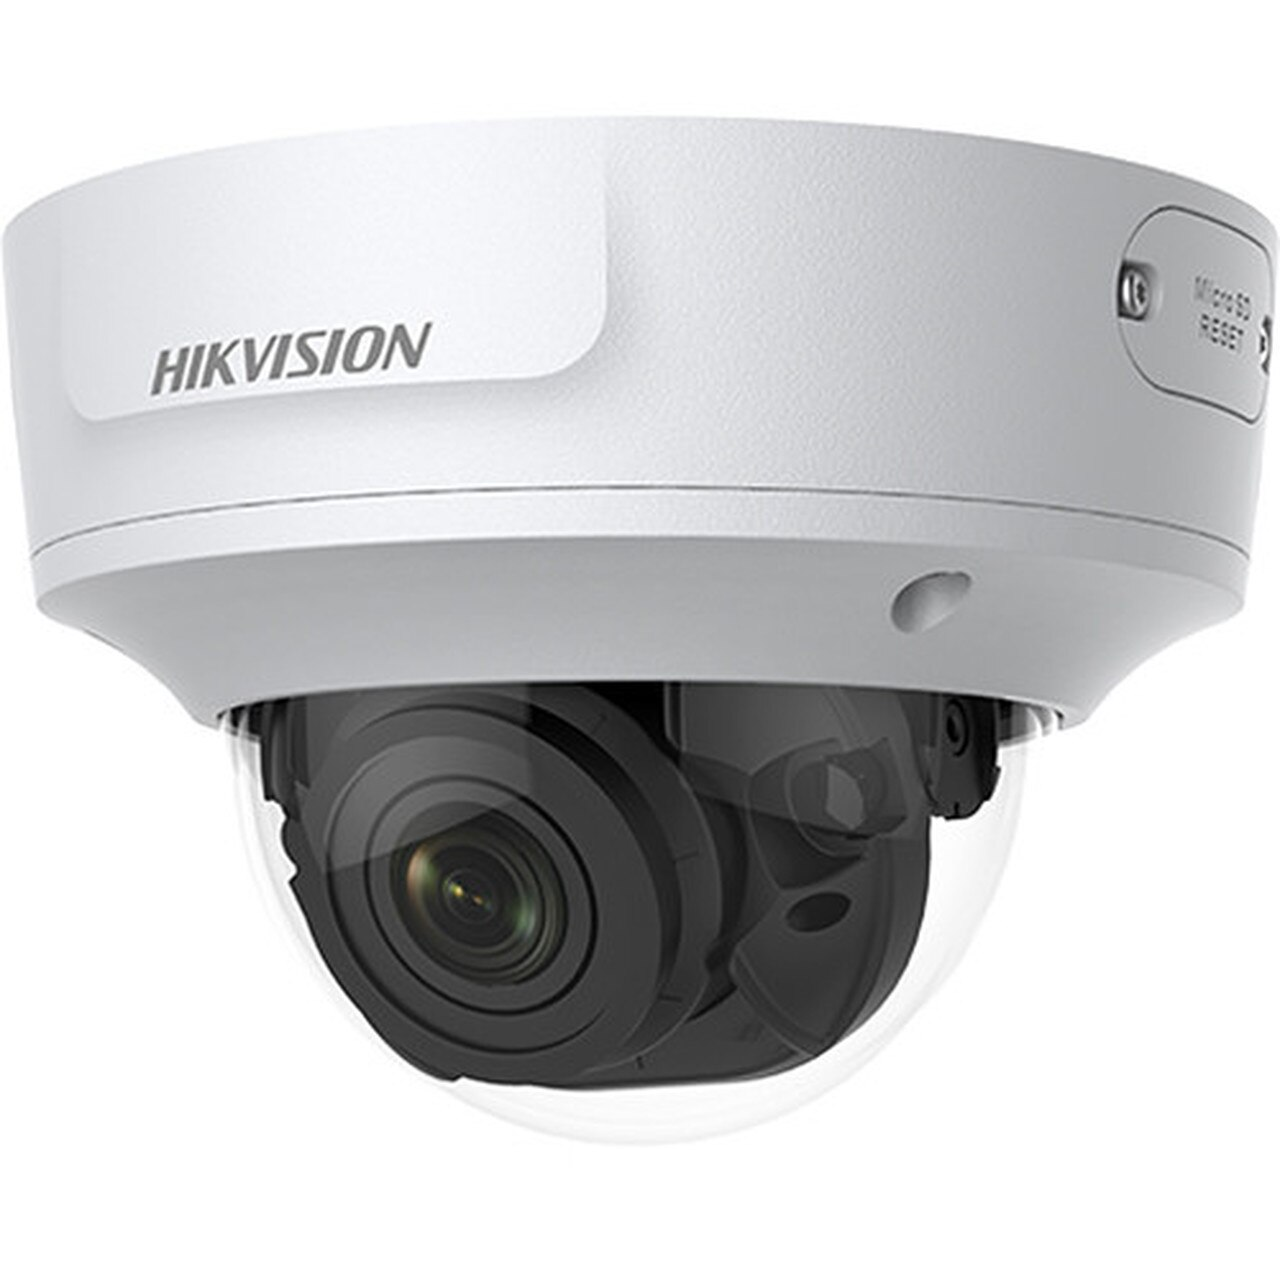 hikvision ds 2cd2743g1 izs 4mp outdoor ir varifocal 1545670017000 1448979  01848.1553718000